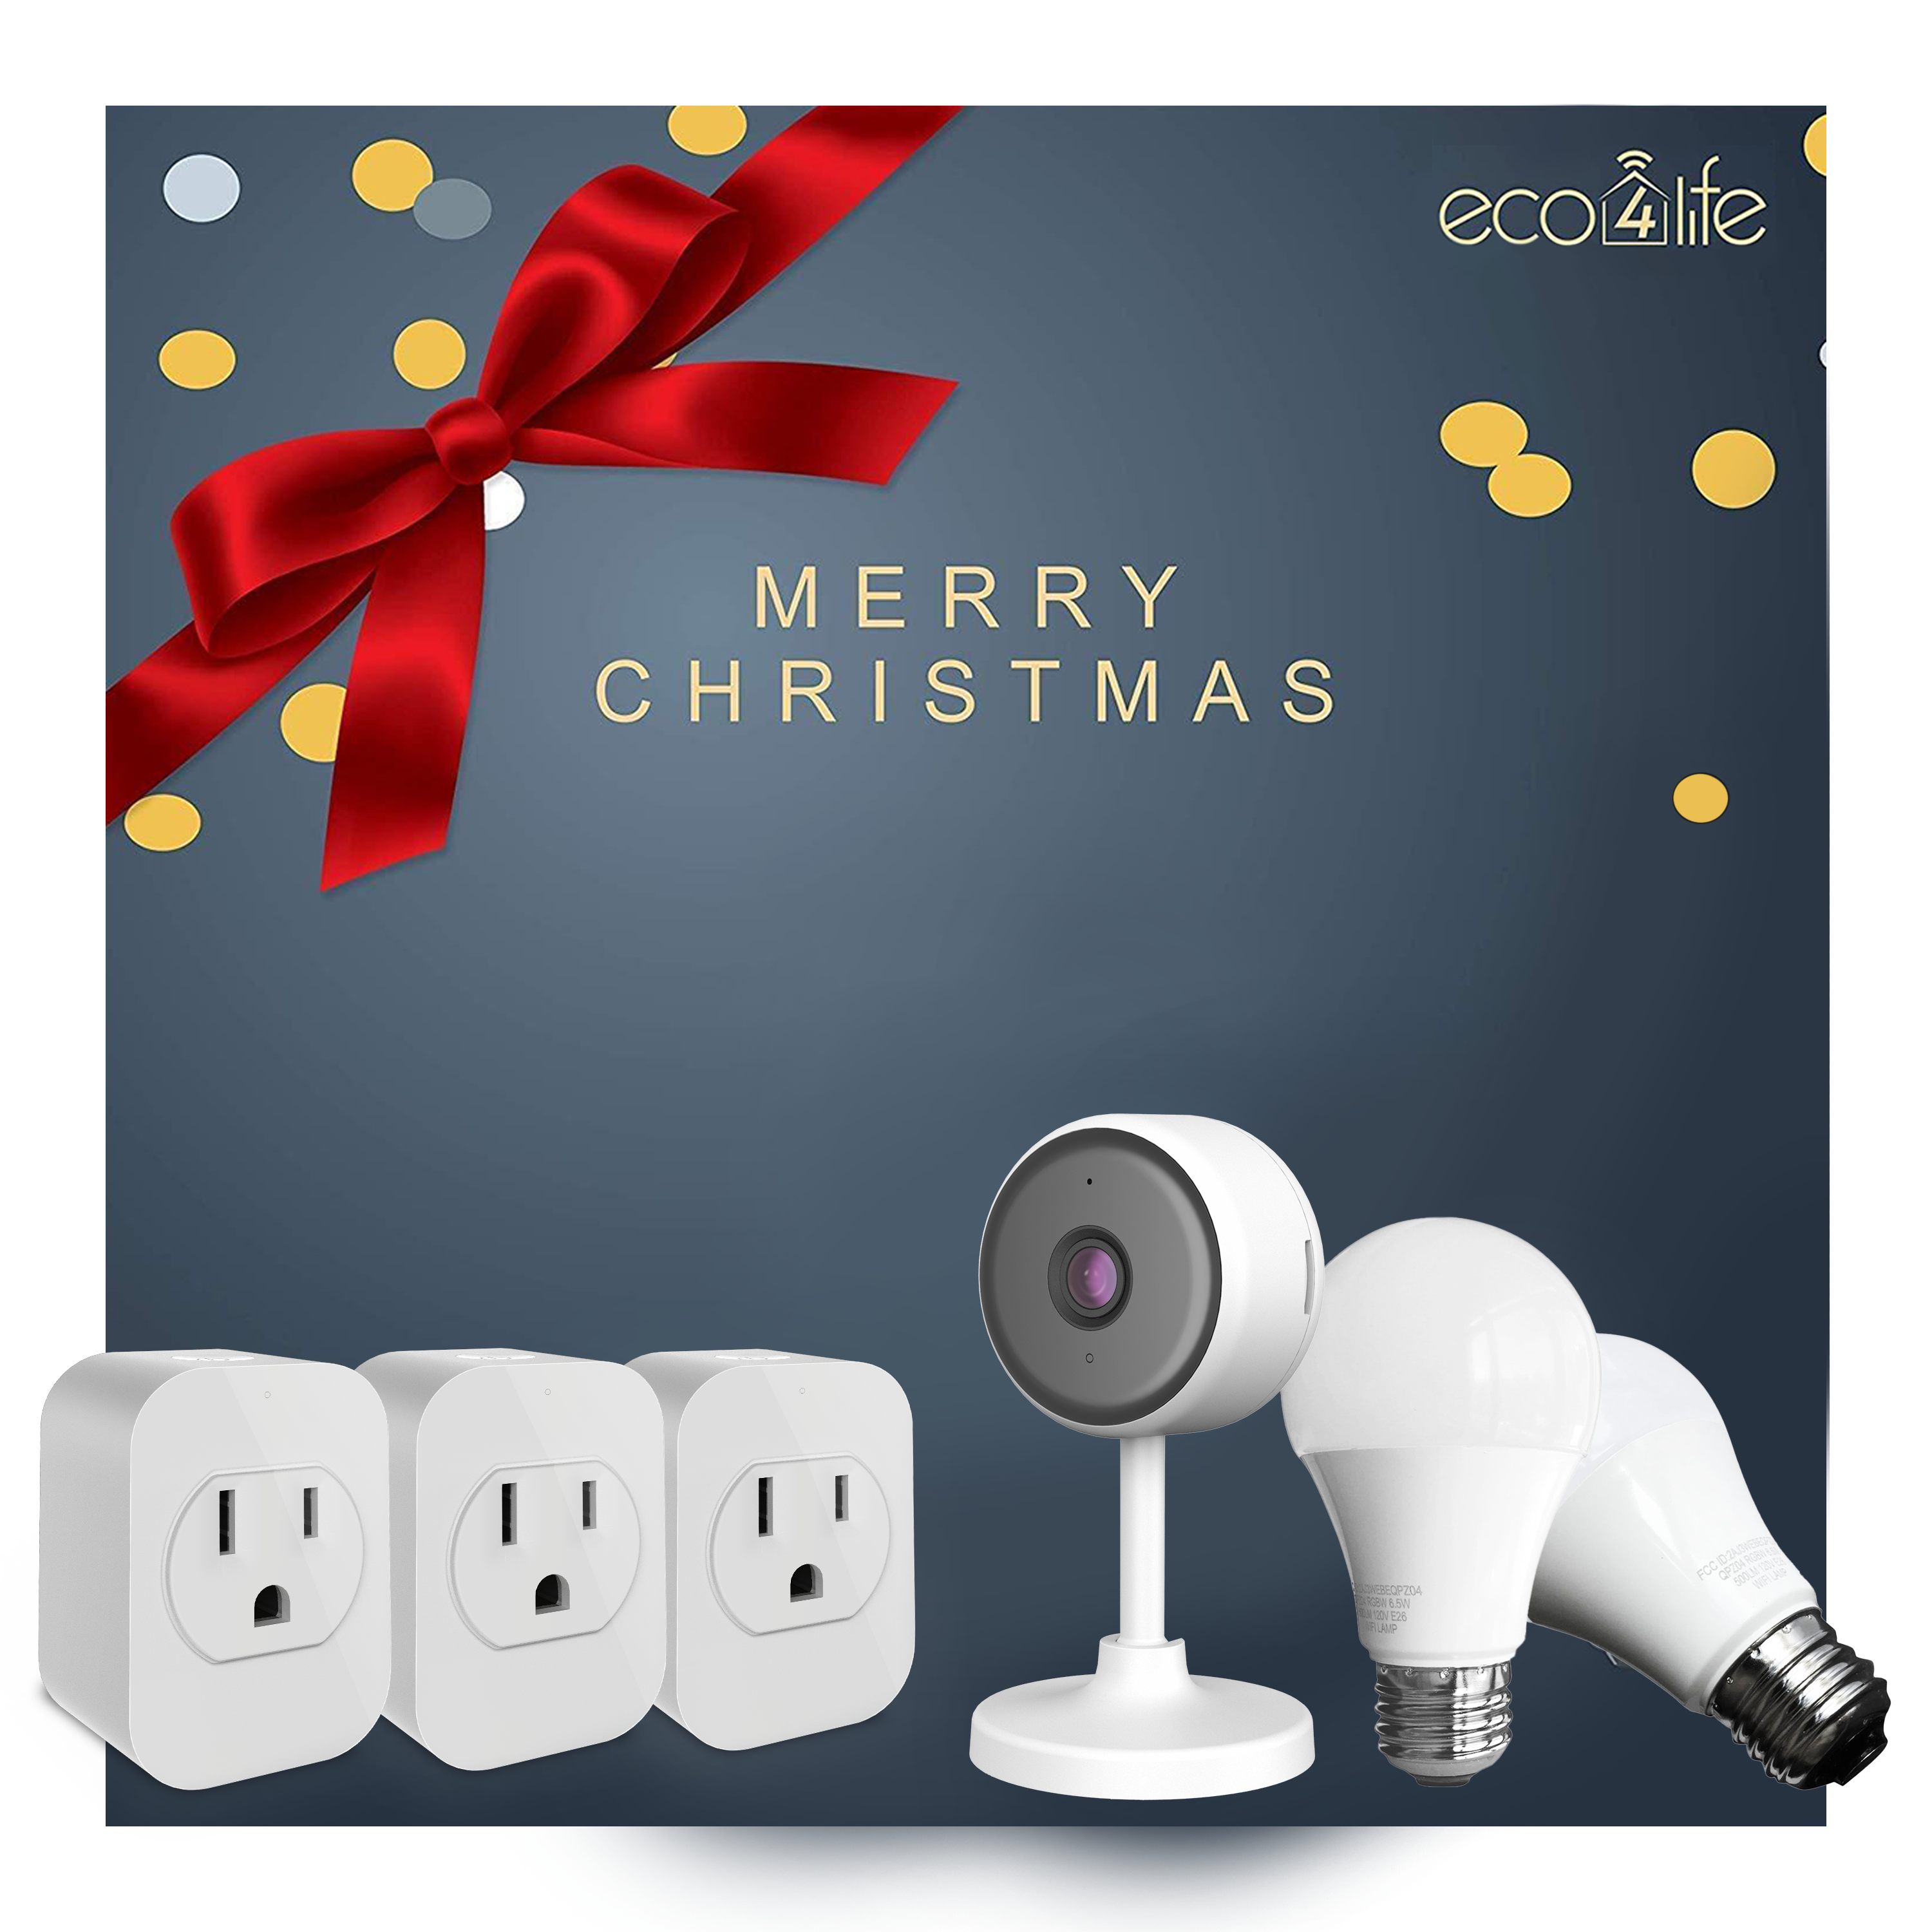 6 Piece Home Security and Wi-Fi Smart Home Gift set - Value Pack